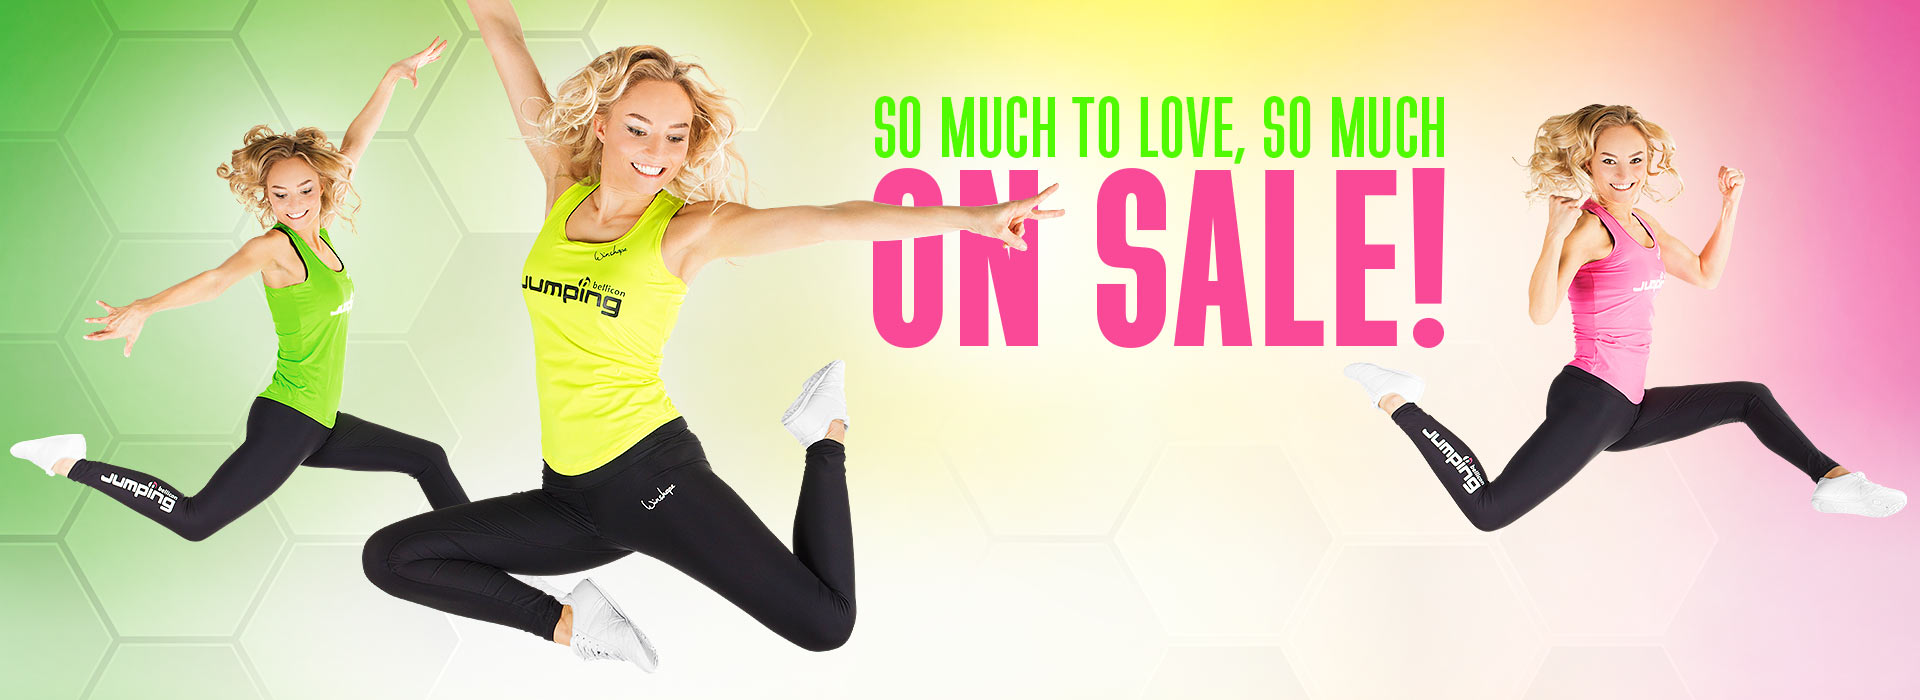 So much to love, so much ON SALE!